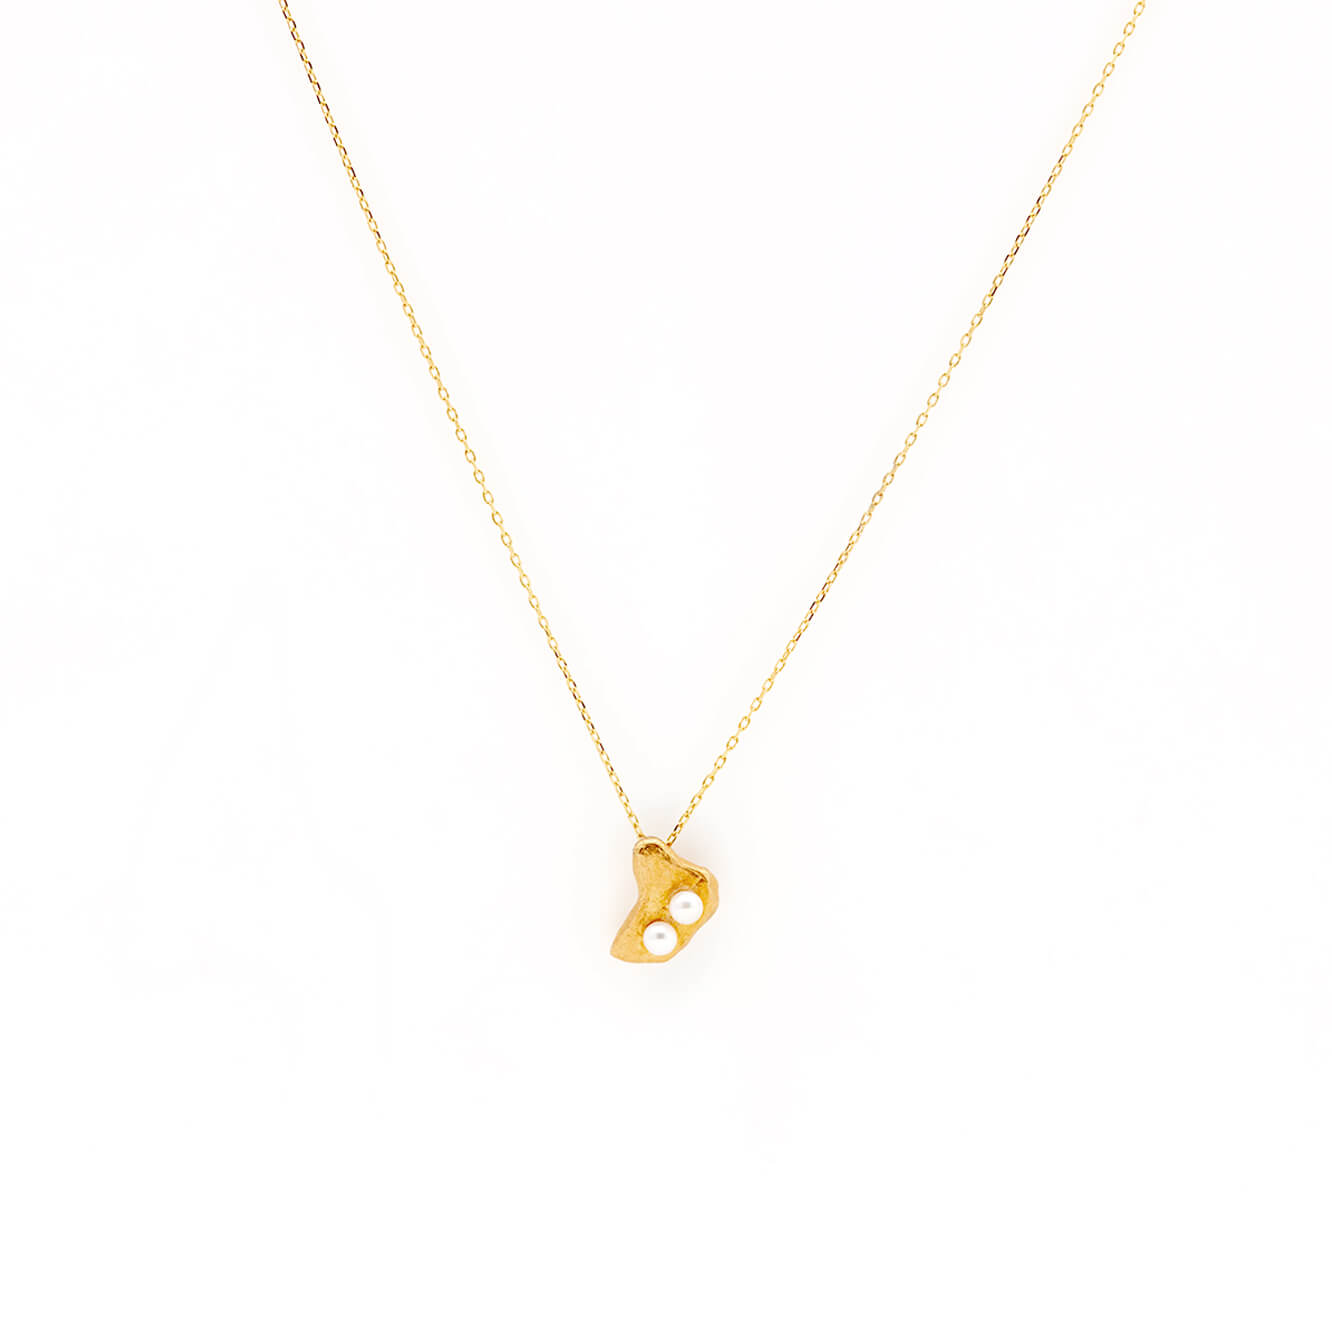 Perle Necklace in Gold Vermeil